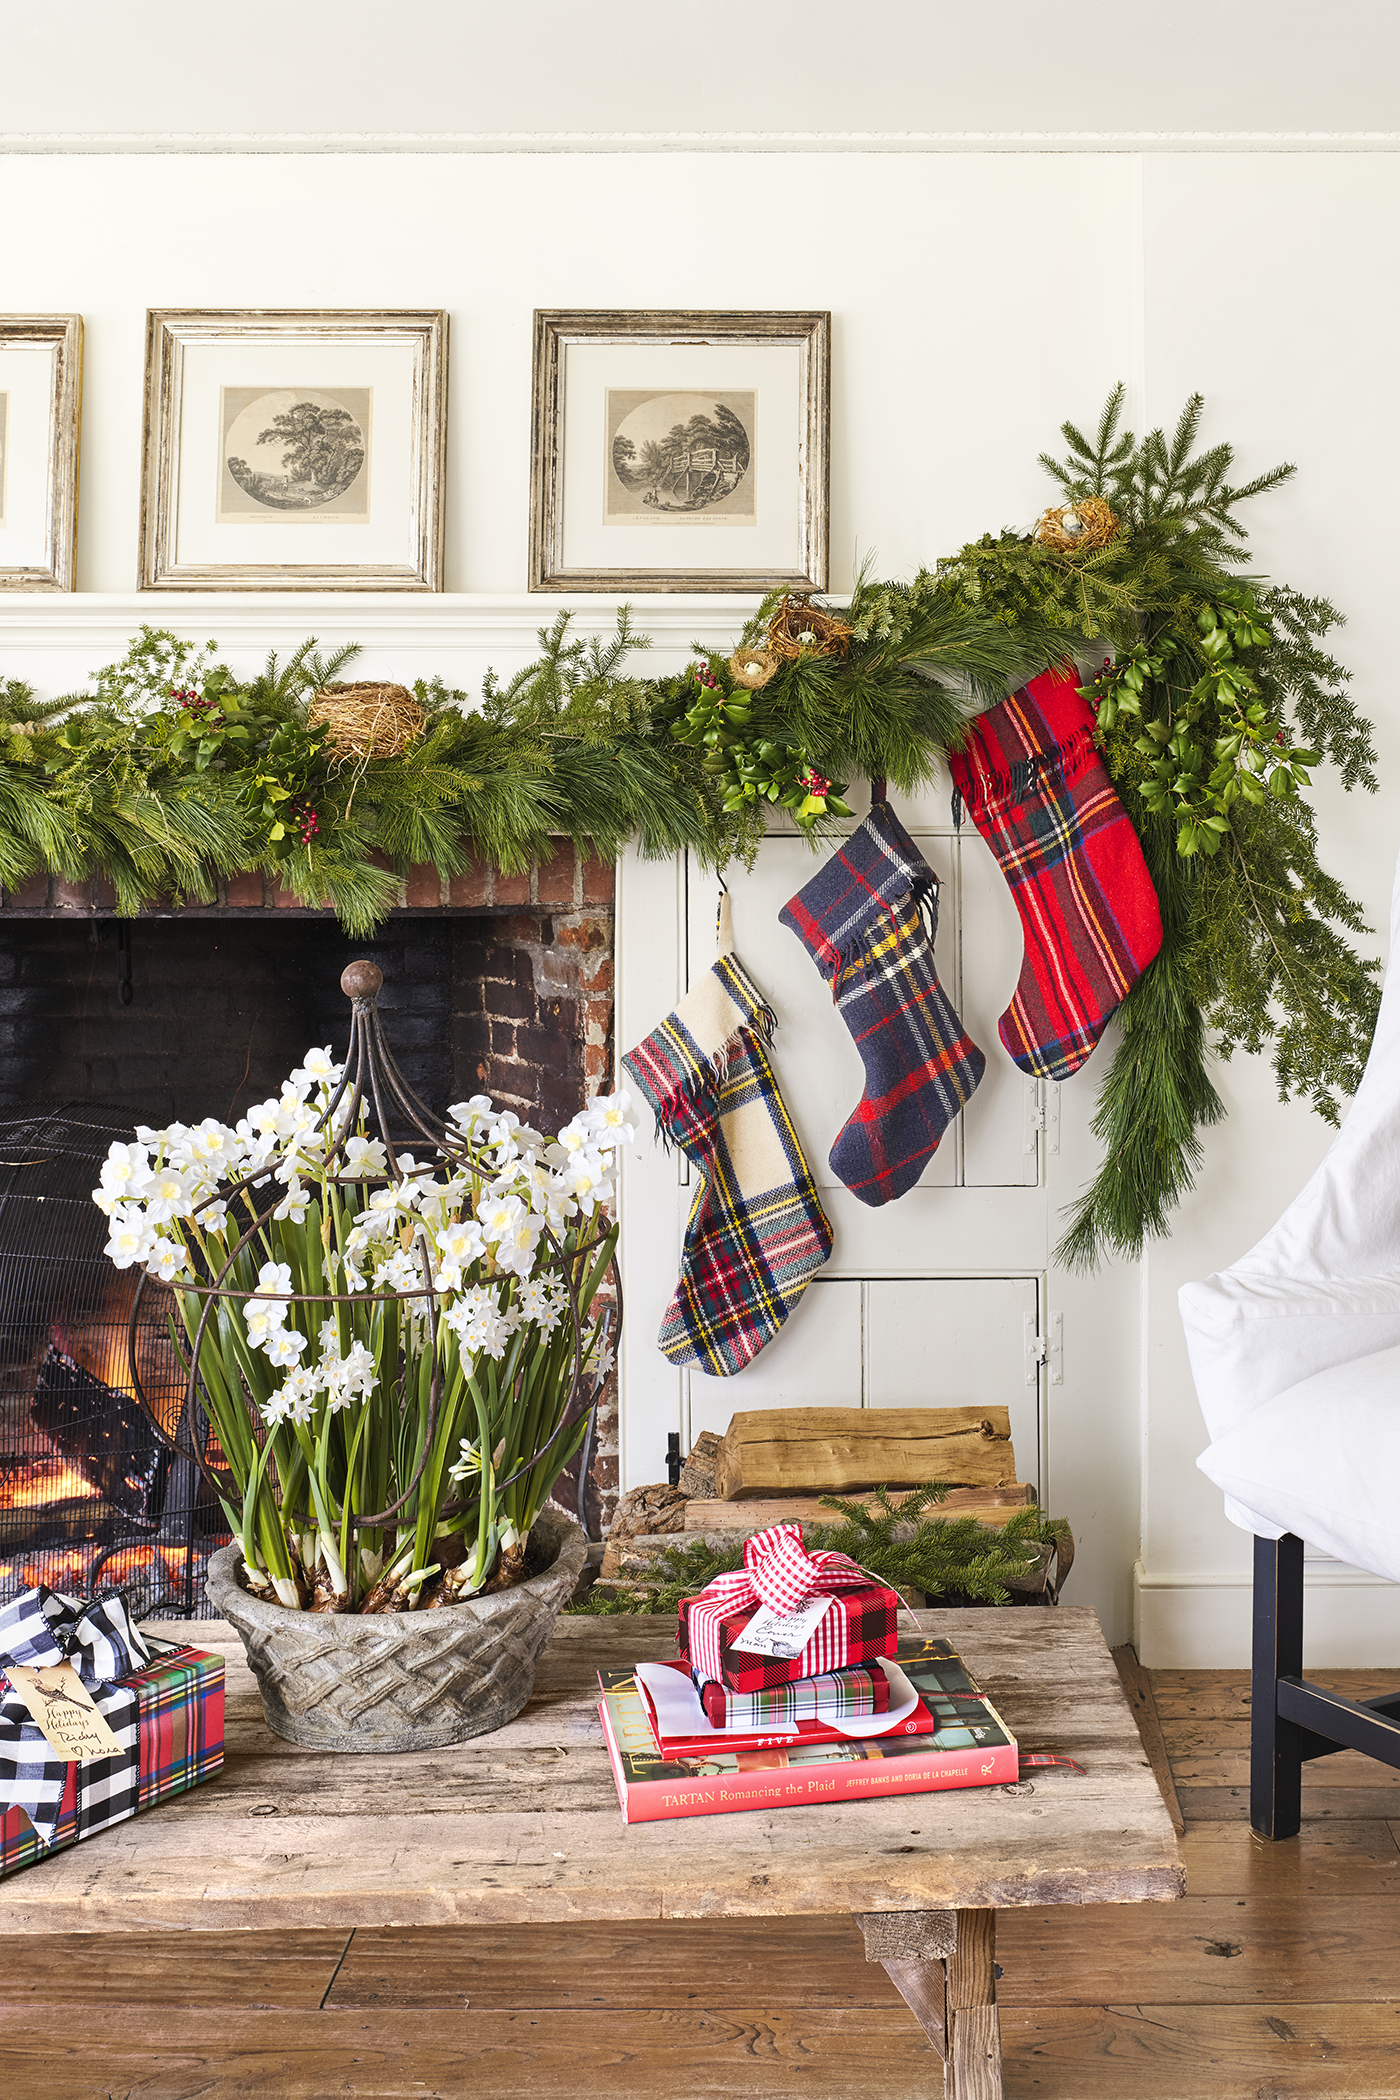 50 christmas mantel decorations ideas for holiday fireplace mantel decorating - Mantelpiece Christmas Decorations